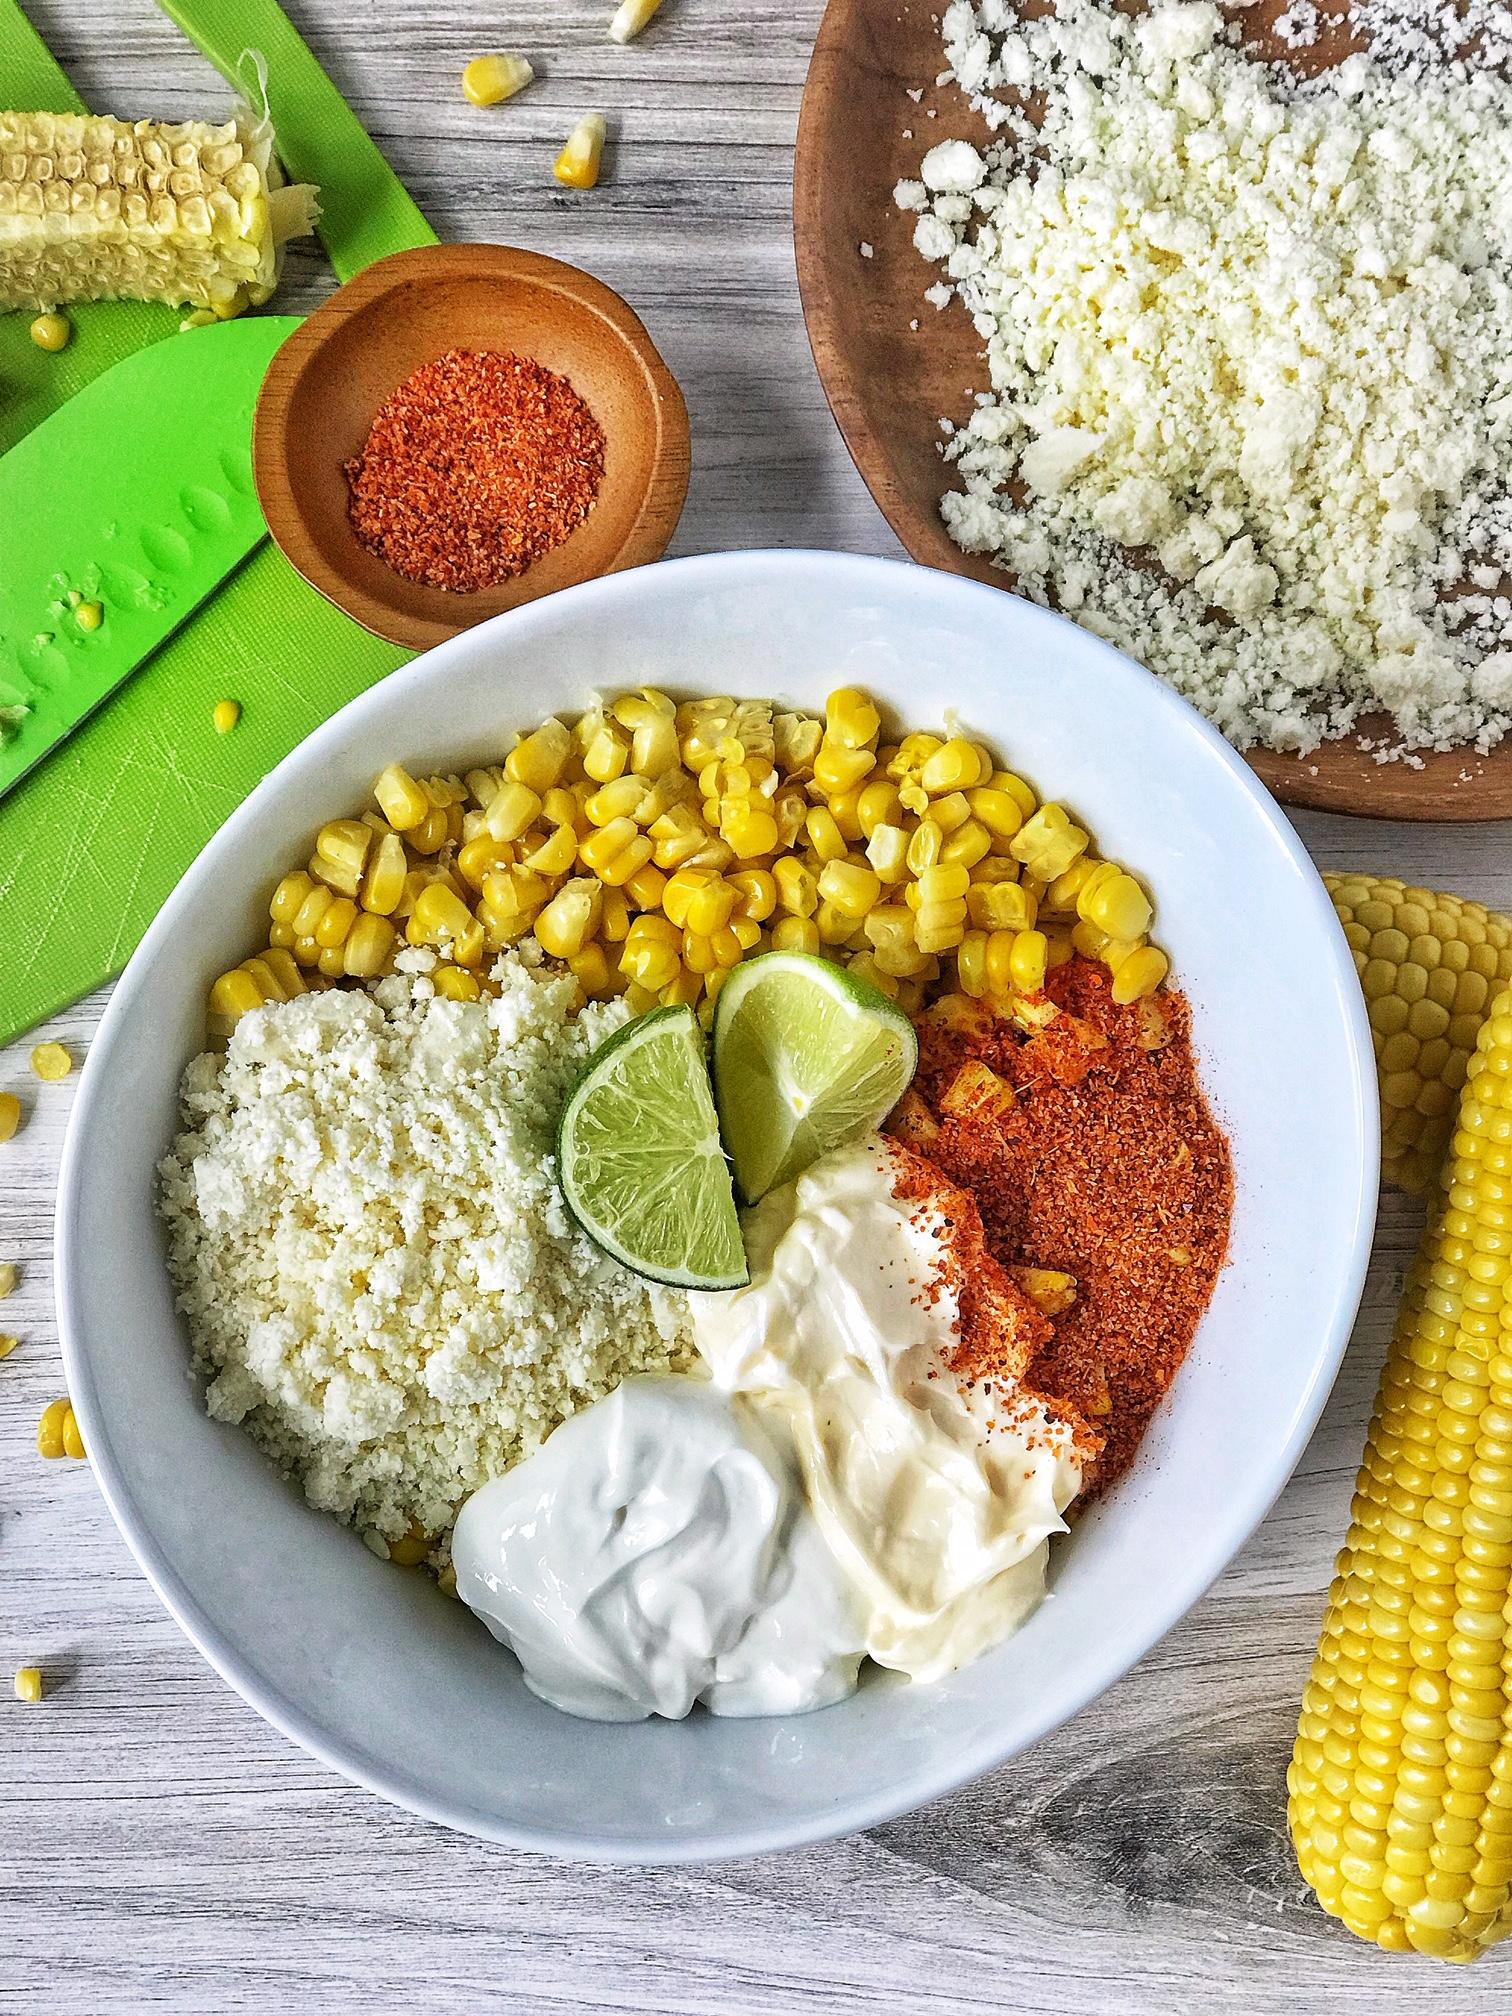 White bowl with Mexican street corn dip ingredients. White bowl with corn, crumbled cheese, mayo, sour cream, Tajin, and lime. Corn and crumbled cheese in picture.